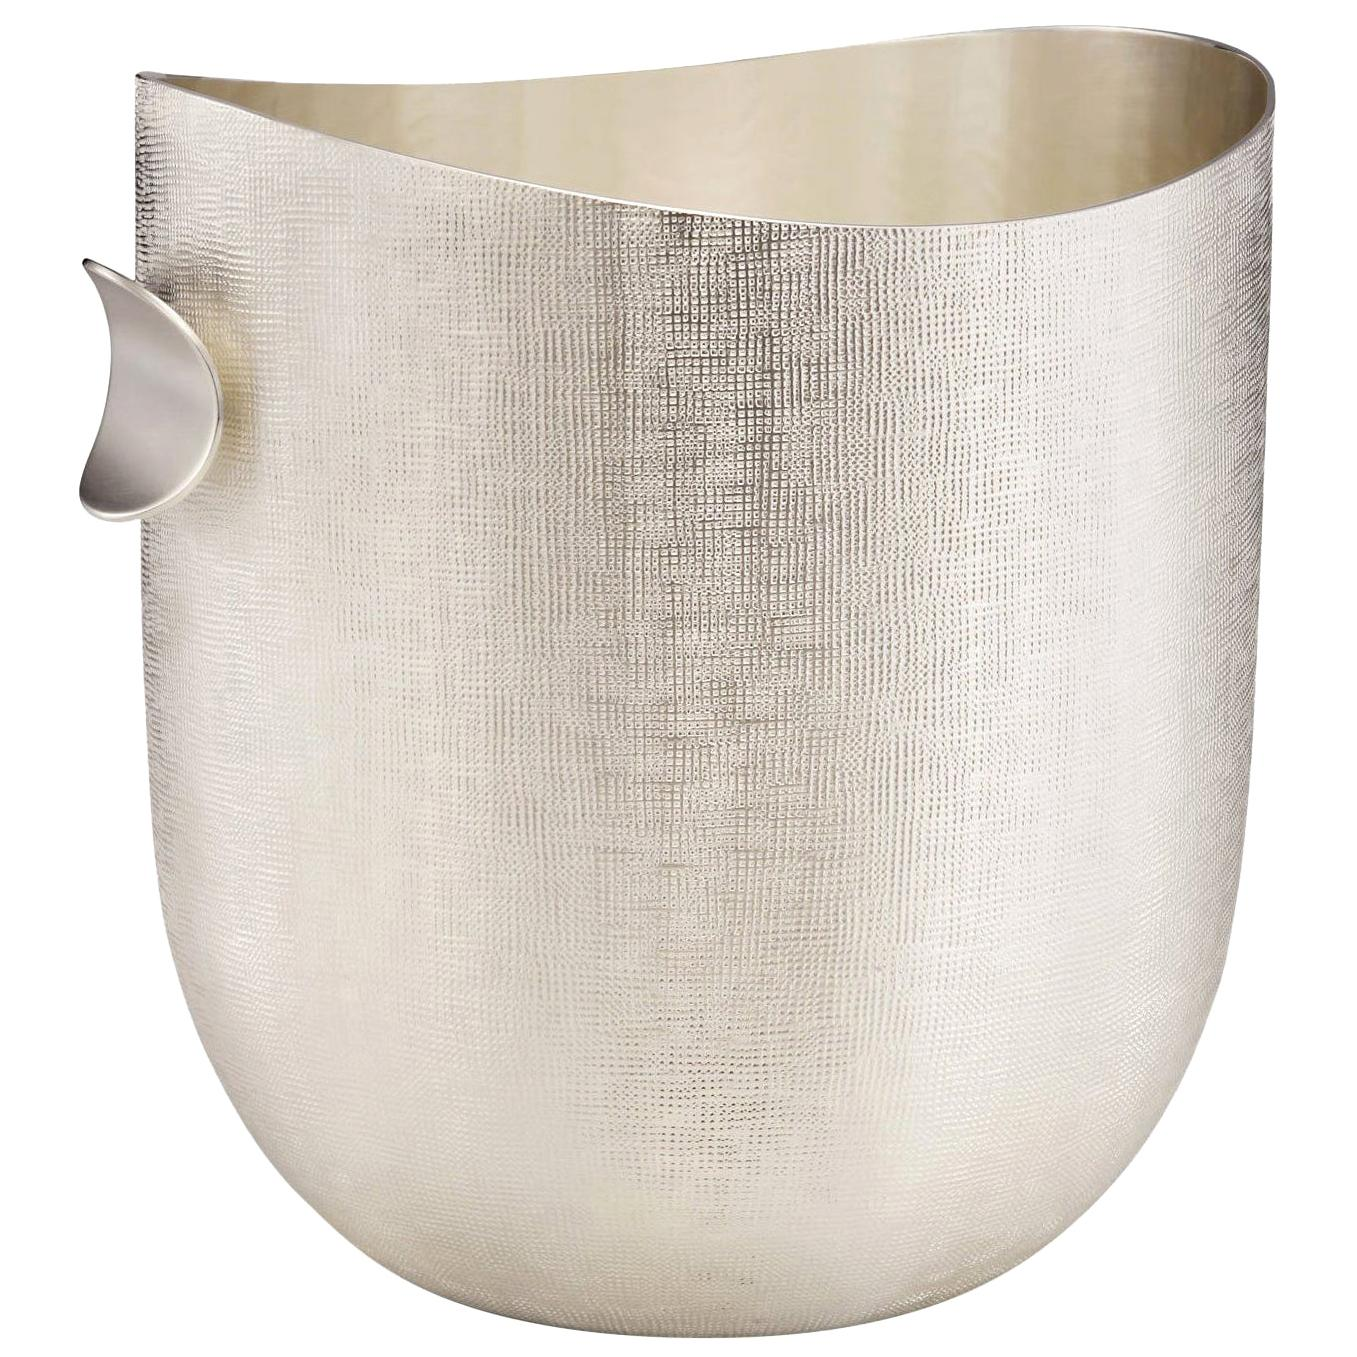 Modern Champagne Bucket, Horizon collection Silver Plated